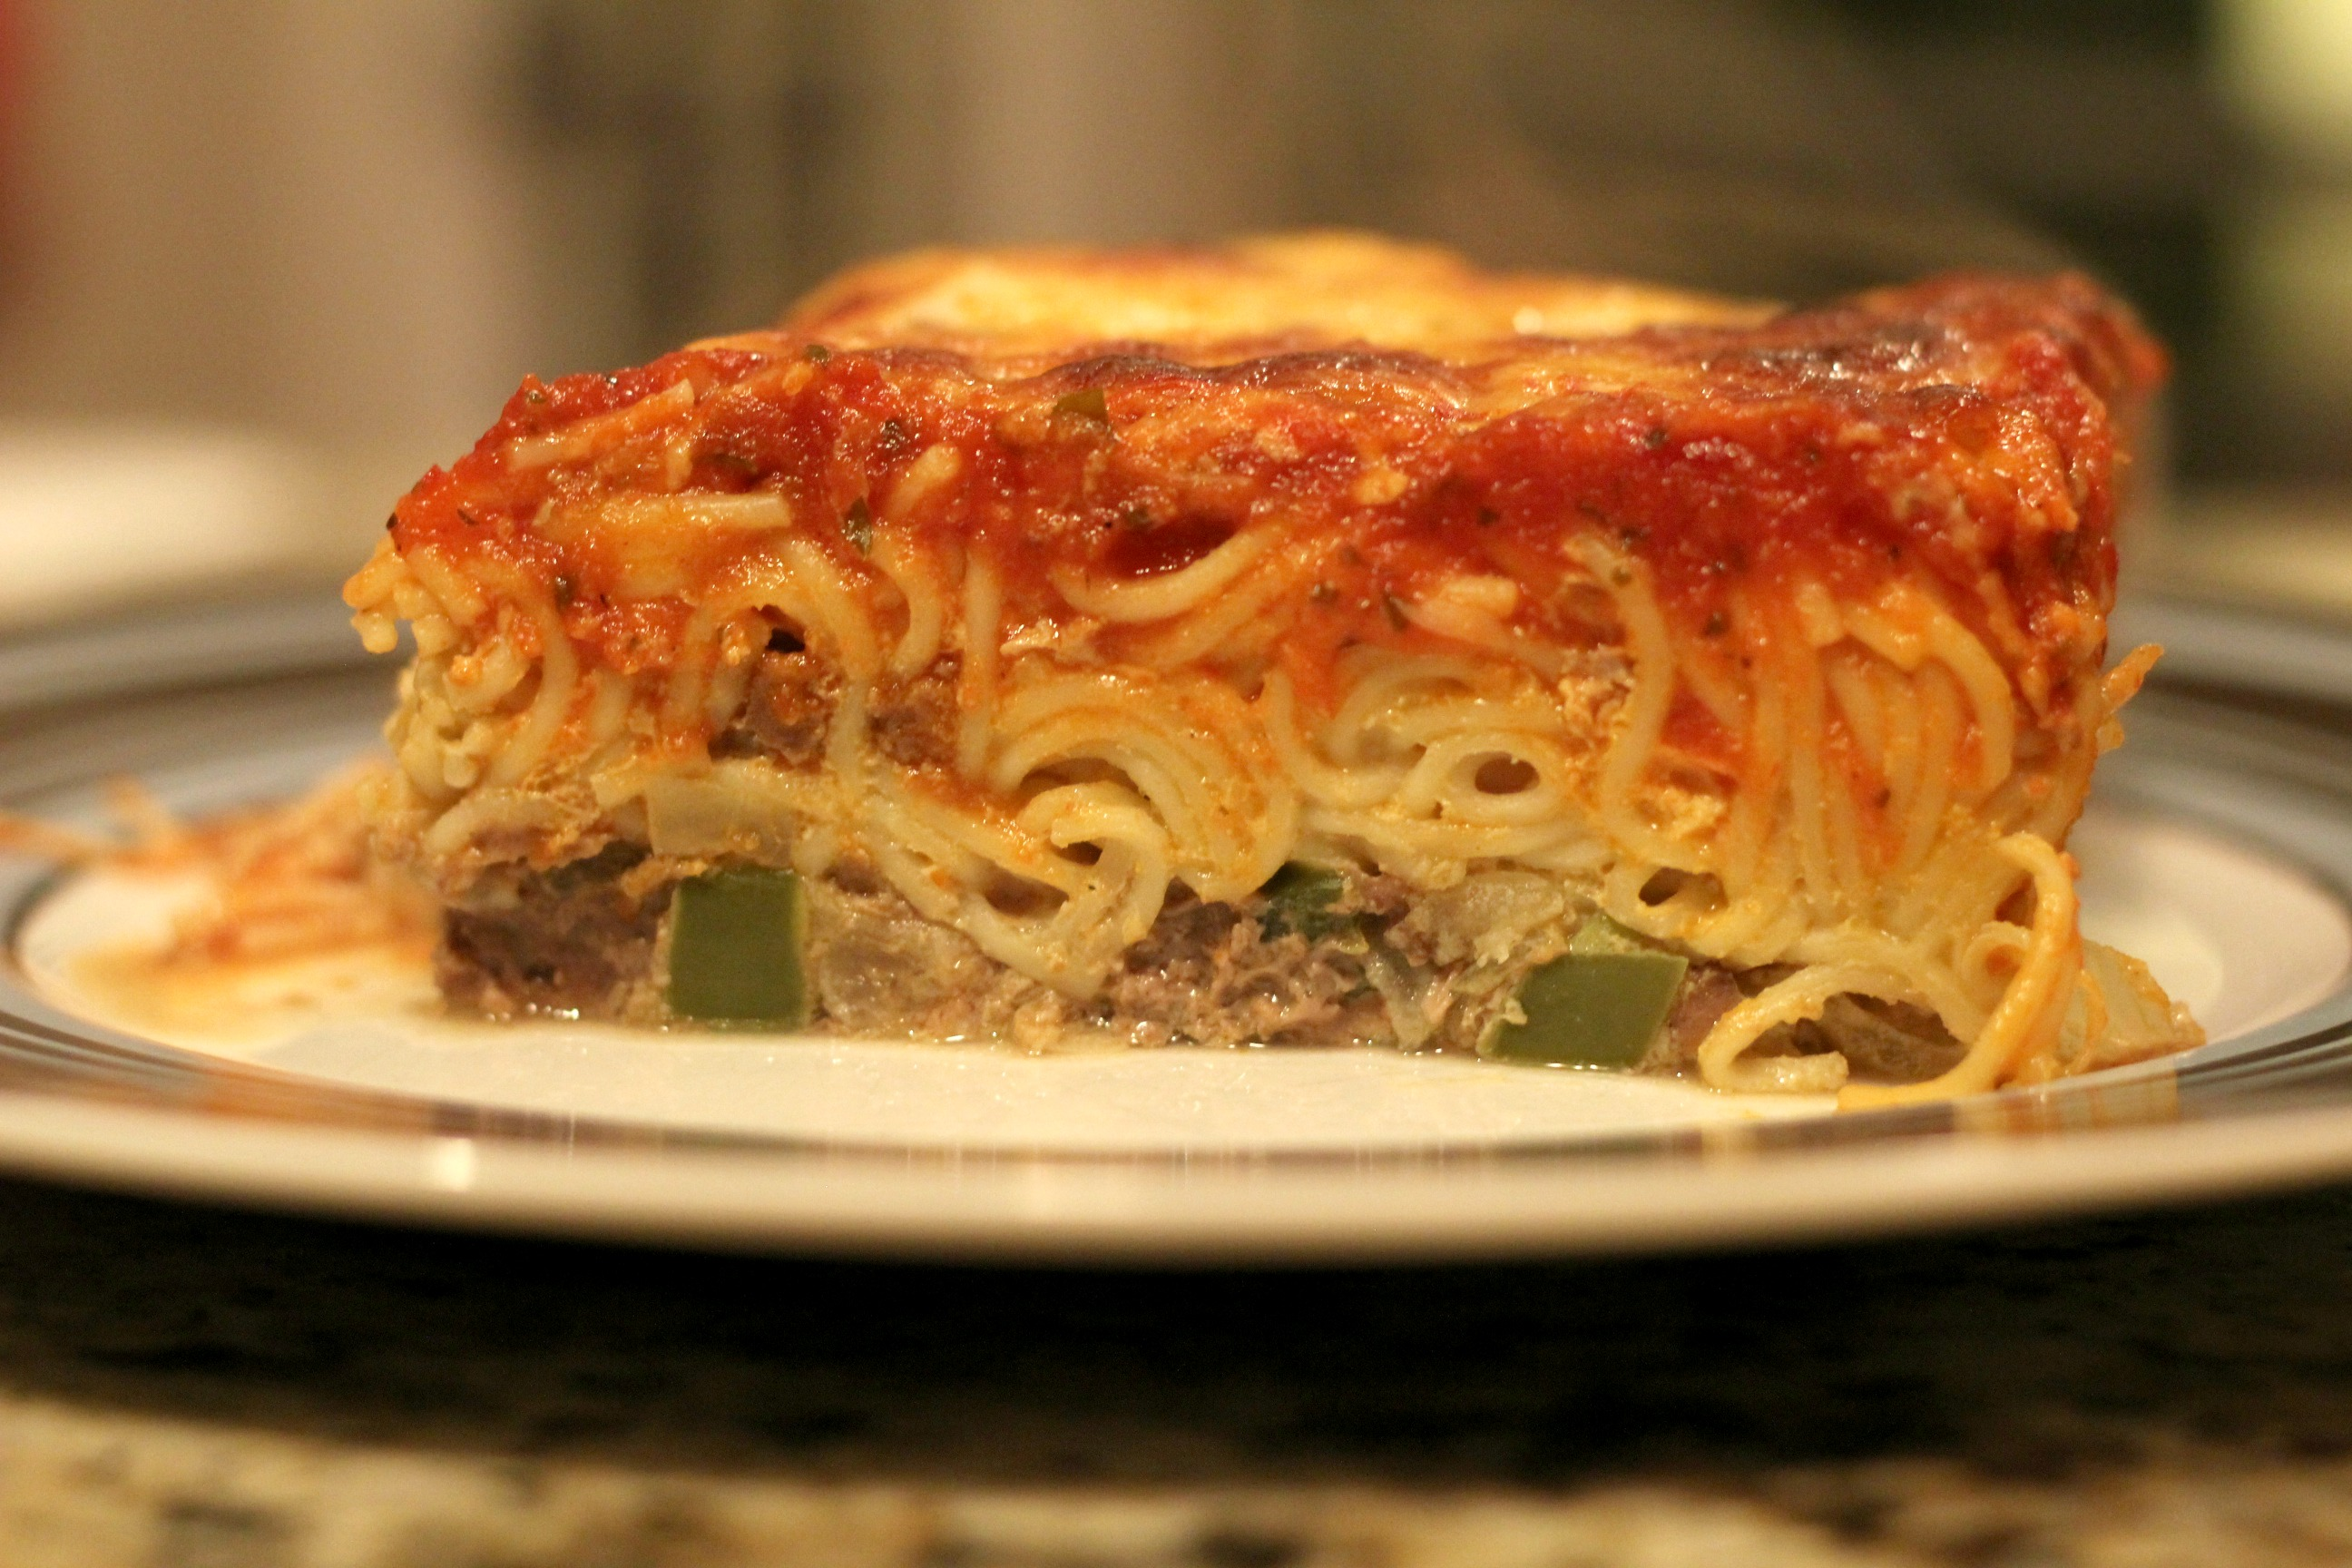 Baked Spaghetti - Normal CookingNormal Cooking